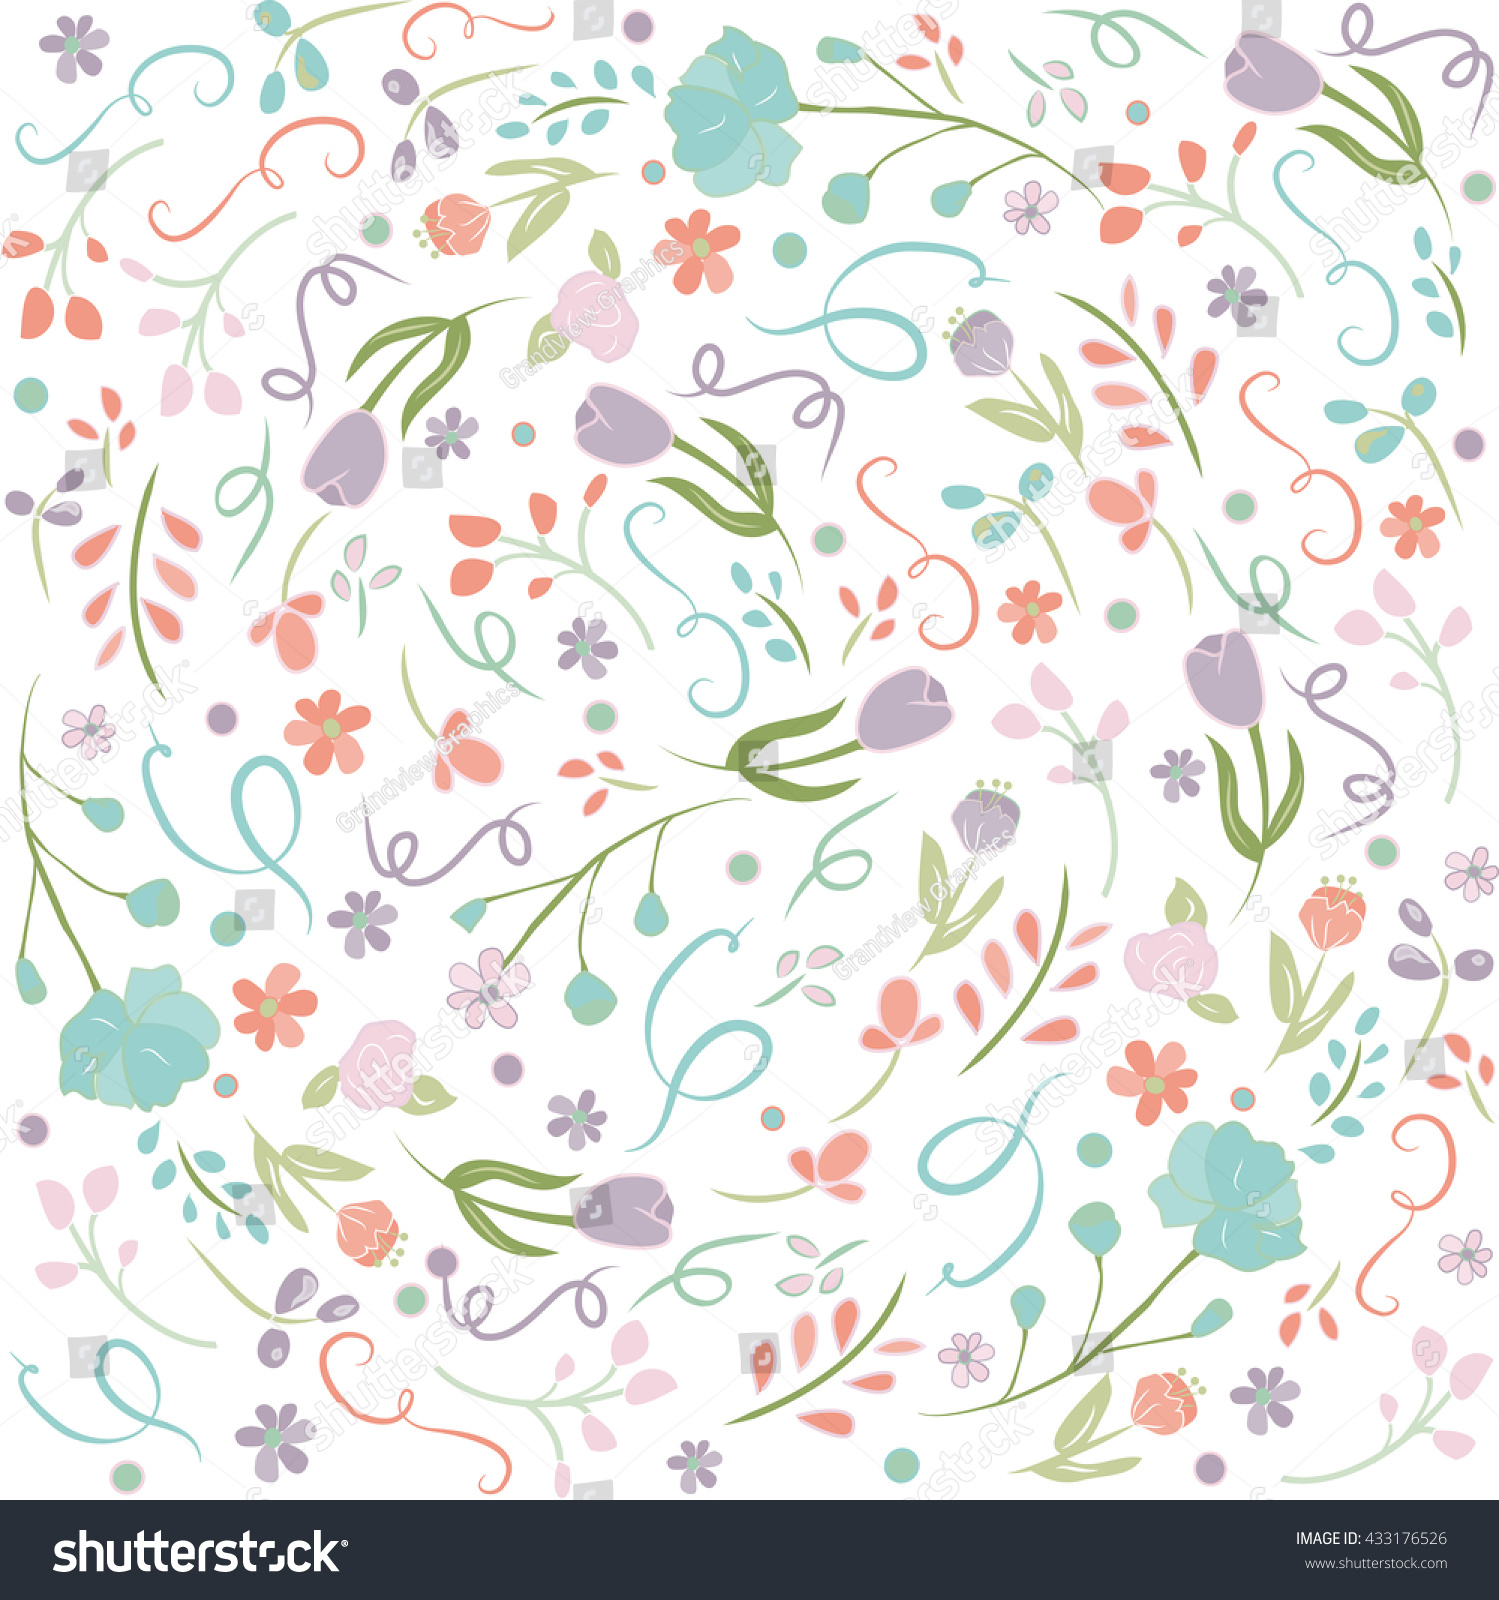 Pretty Flowers Background Irregular Floral Wallpaper Stock Vector